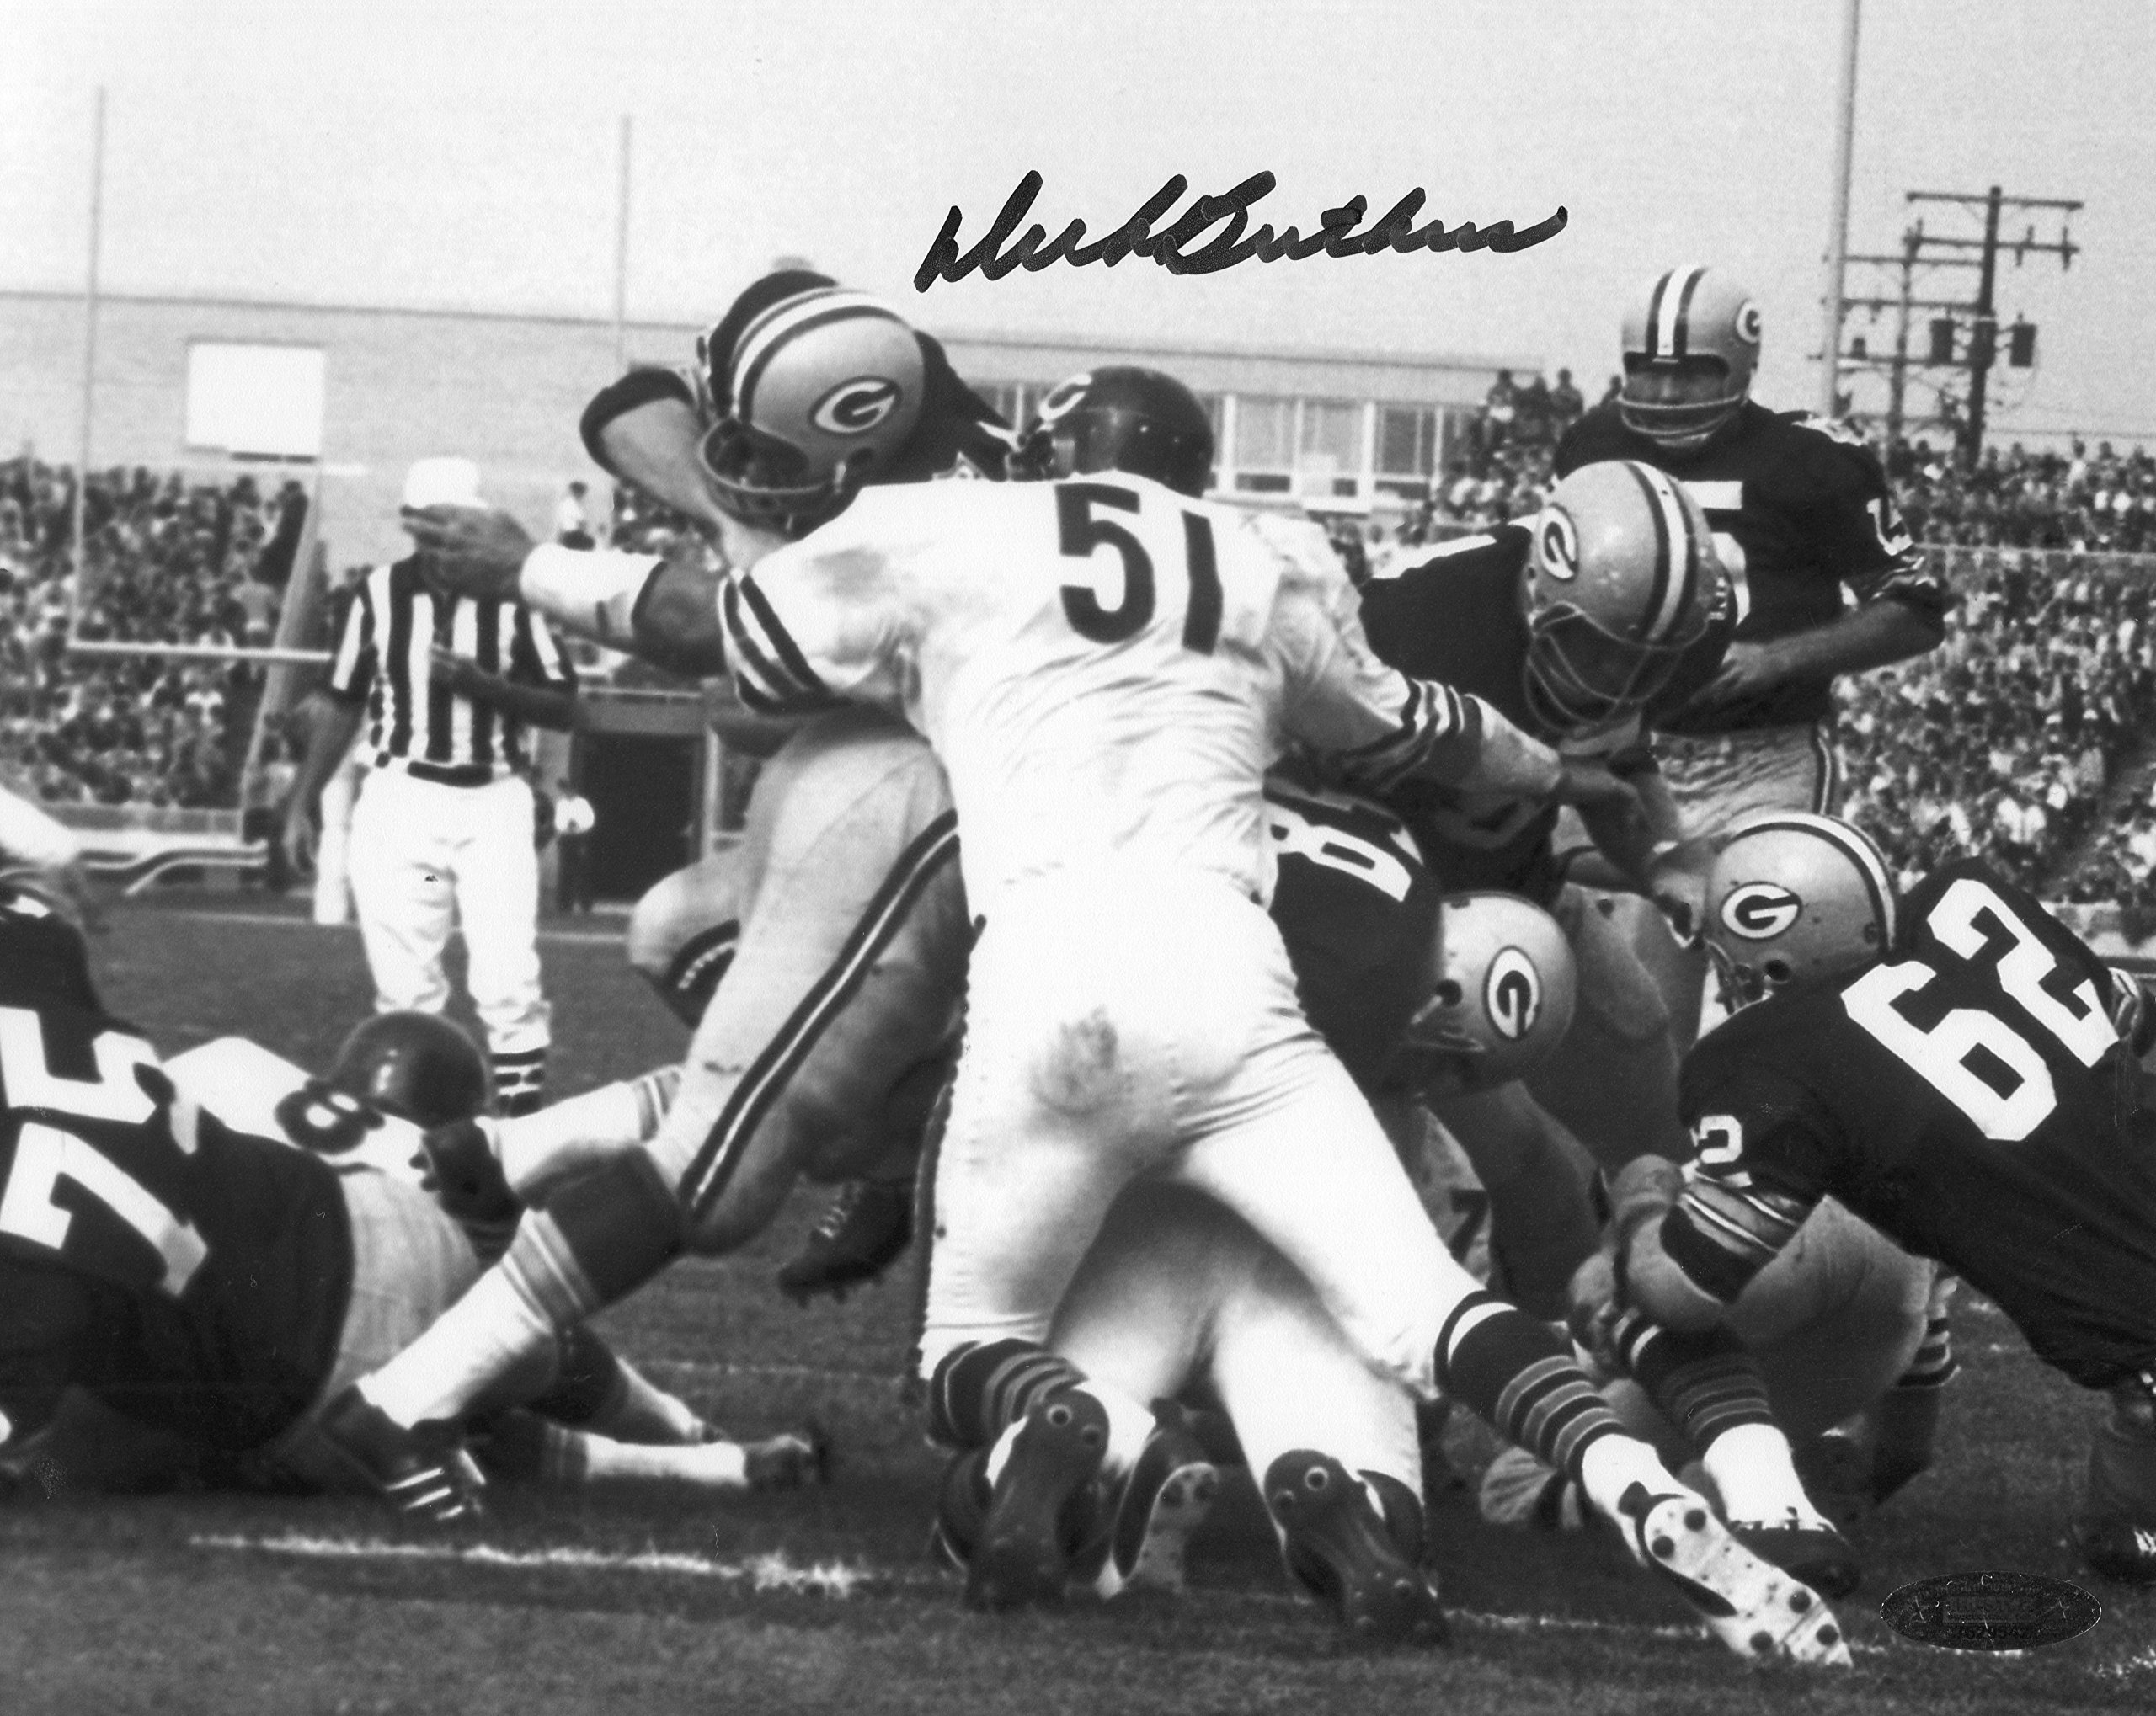 Dick Butkus Signed Autographed Chicago Bears vs Packers 8x10 Photo TRISTAR COA